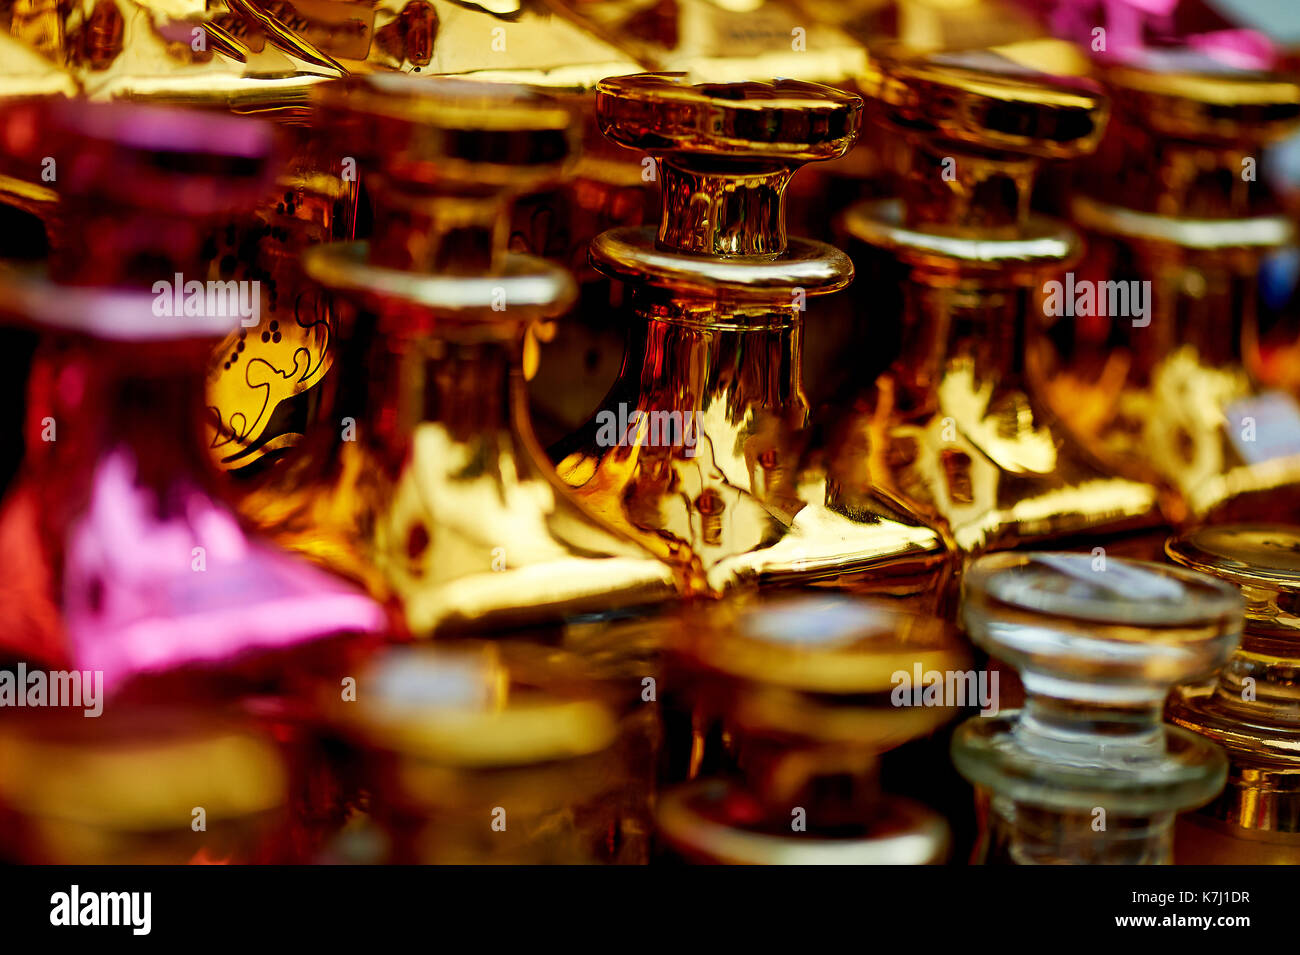 Glass perfume bottles based oils.A Bazaar, market. Macro. Gold and pink gamma - Stock Image